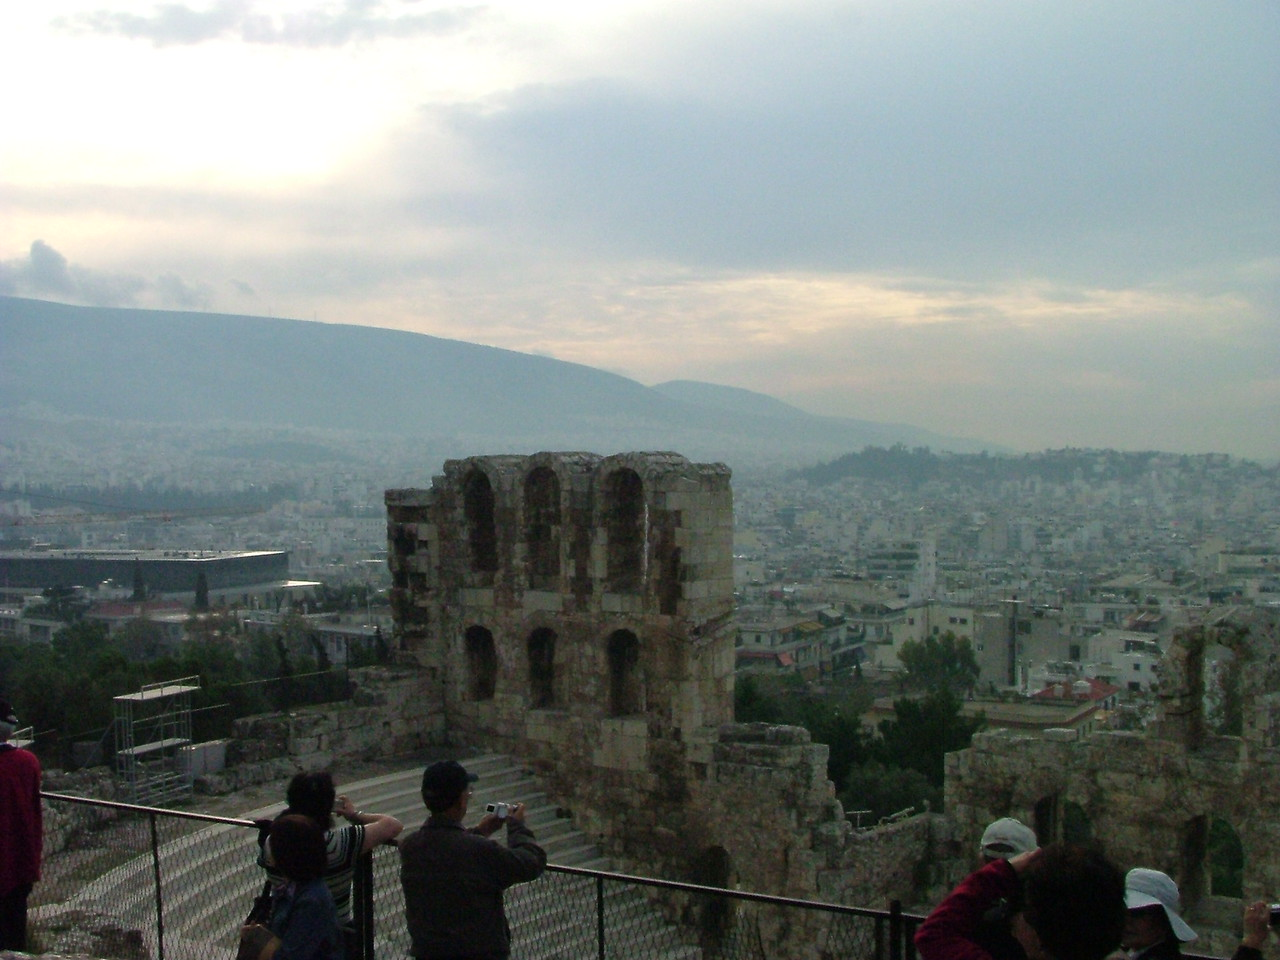 Stadium at the Acropolis where concerts and things like that are held